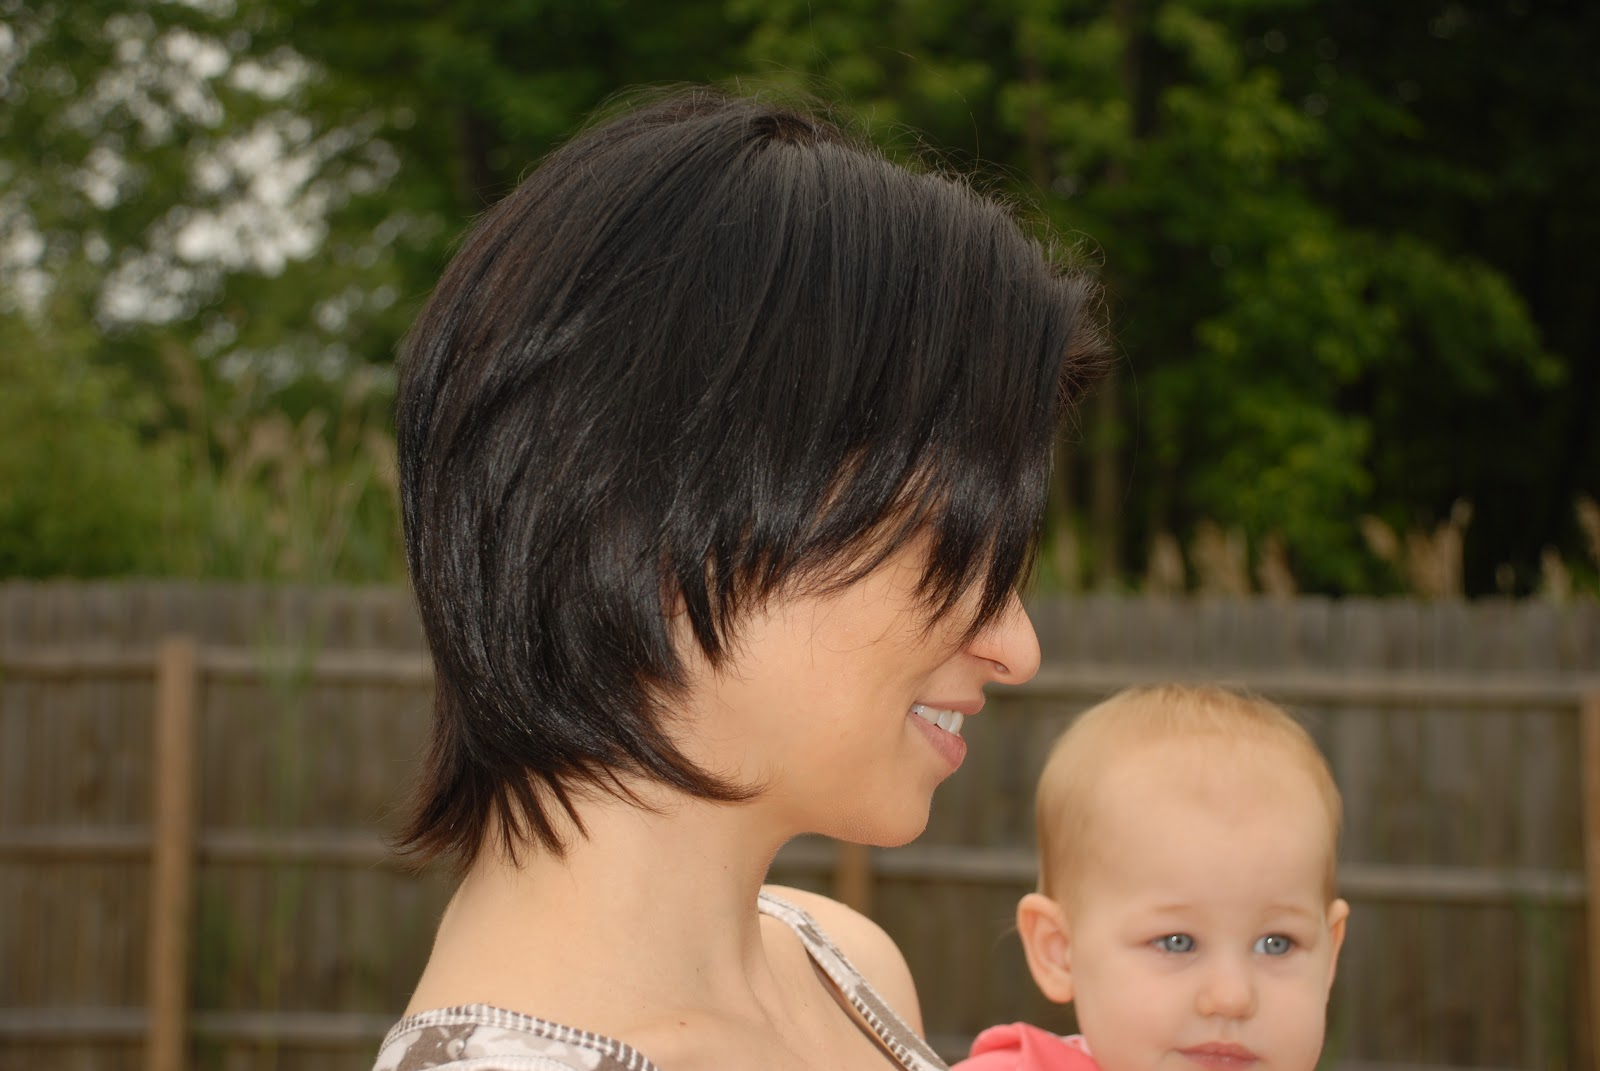 Growing Out A Pixie Cut 7 Months Later It Keeps Getting Better